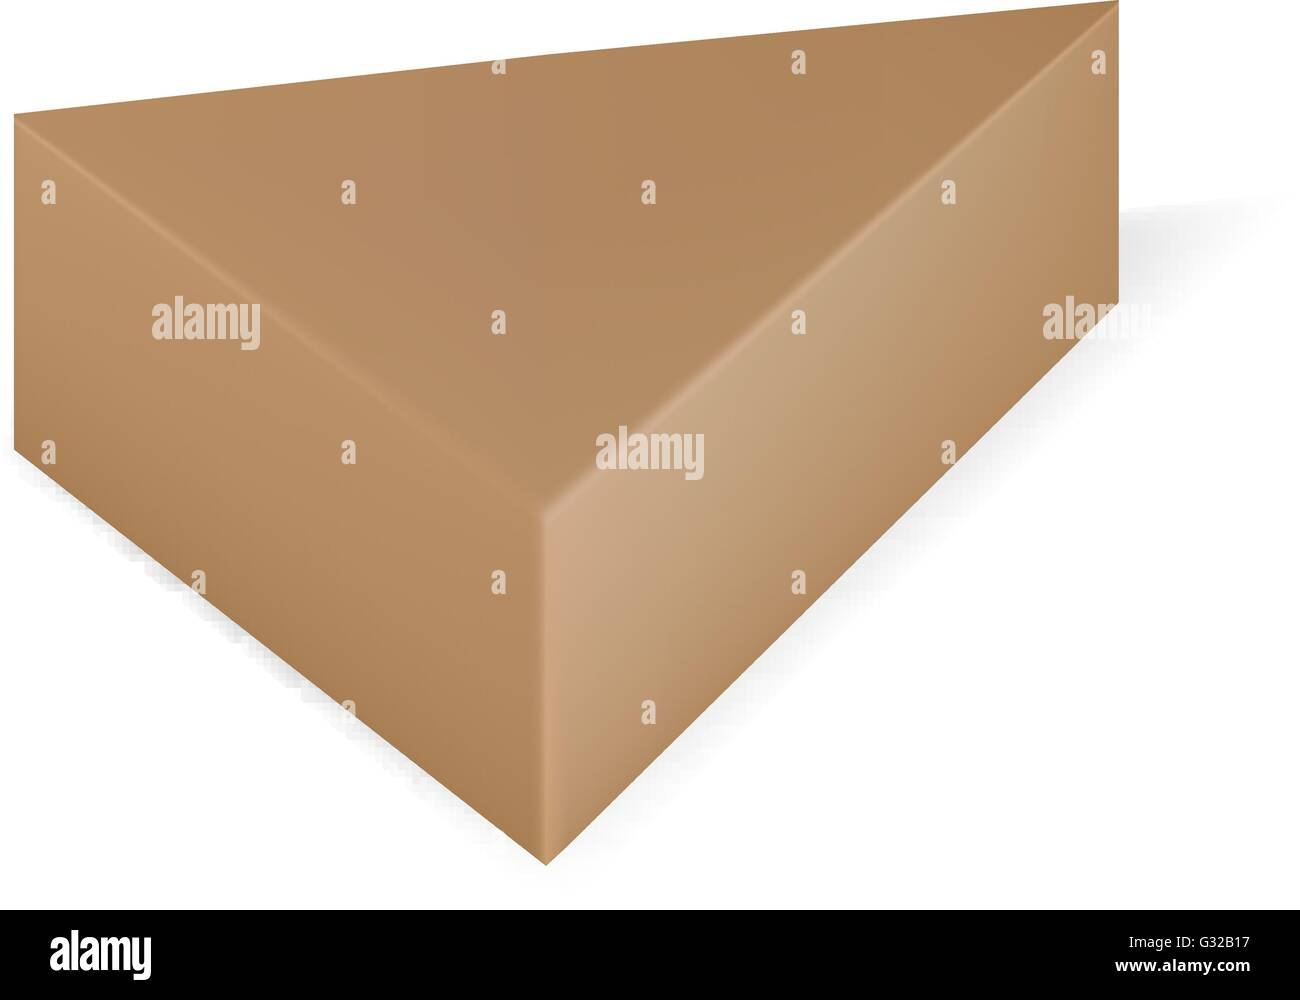 vector packaging brown triangle packaging box on isolated white